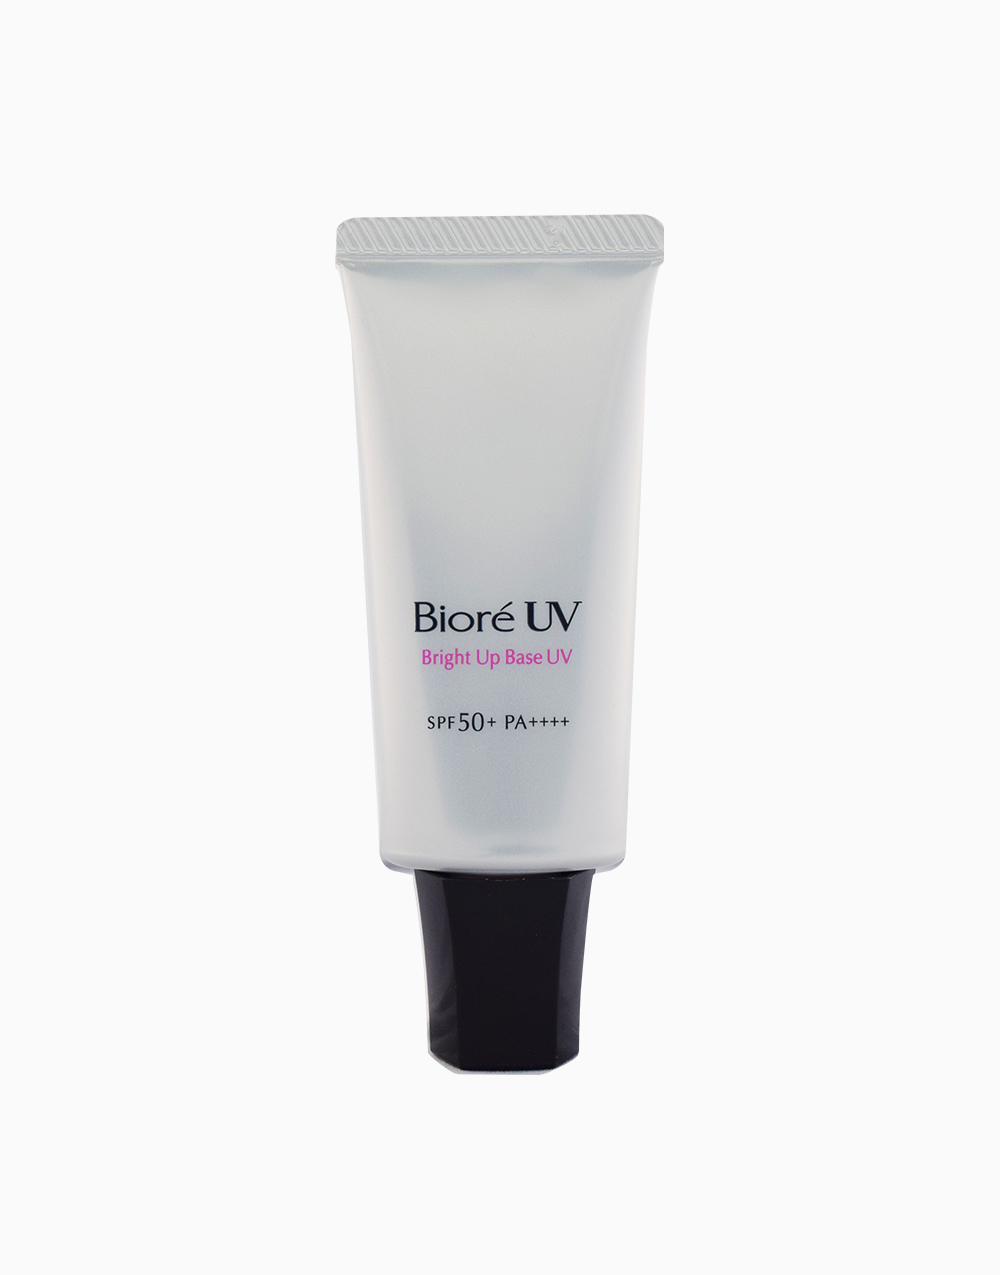 Bright Up UV Covering Base by Biore